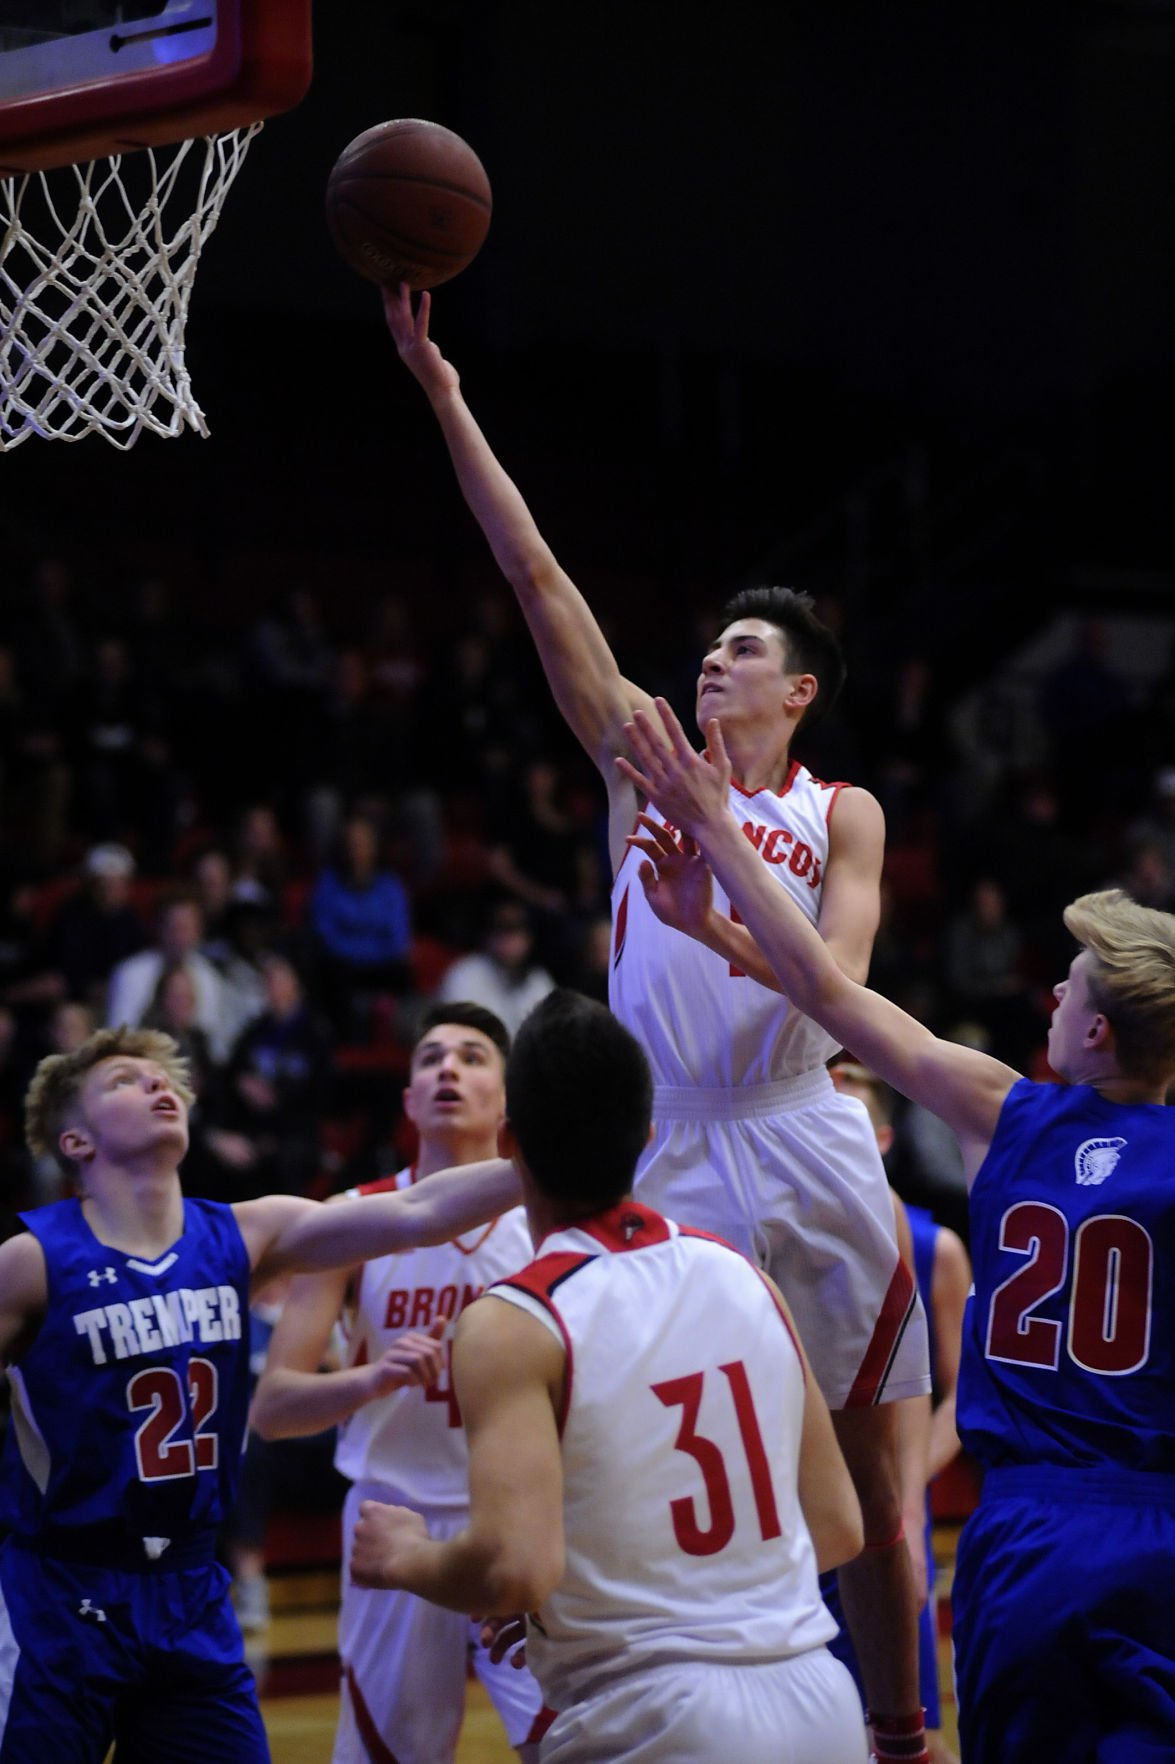 In Photos: Union Grove edged by Tremper